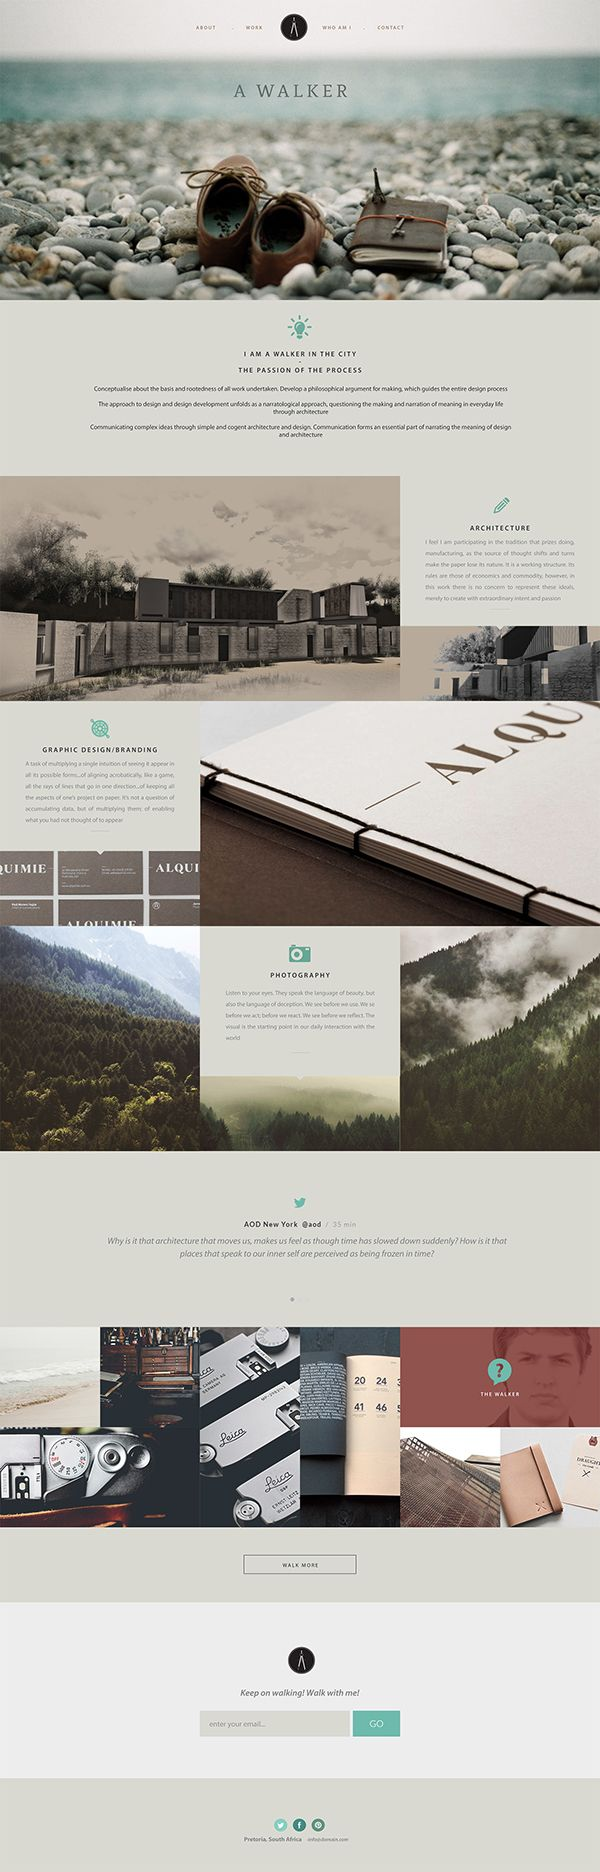 A Walker - Architecture Portfolio Web Brand on Behance